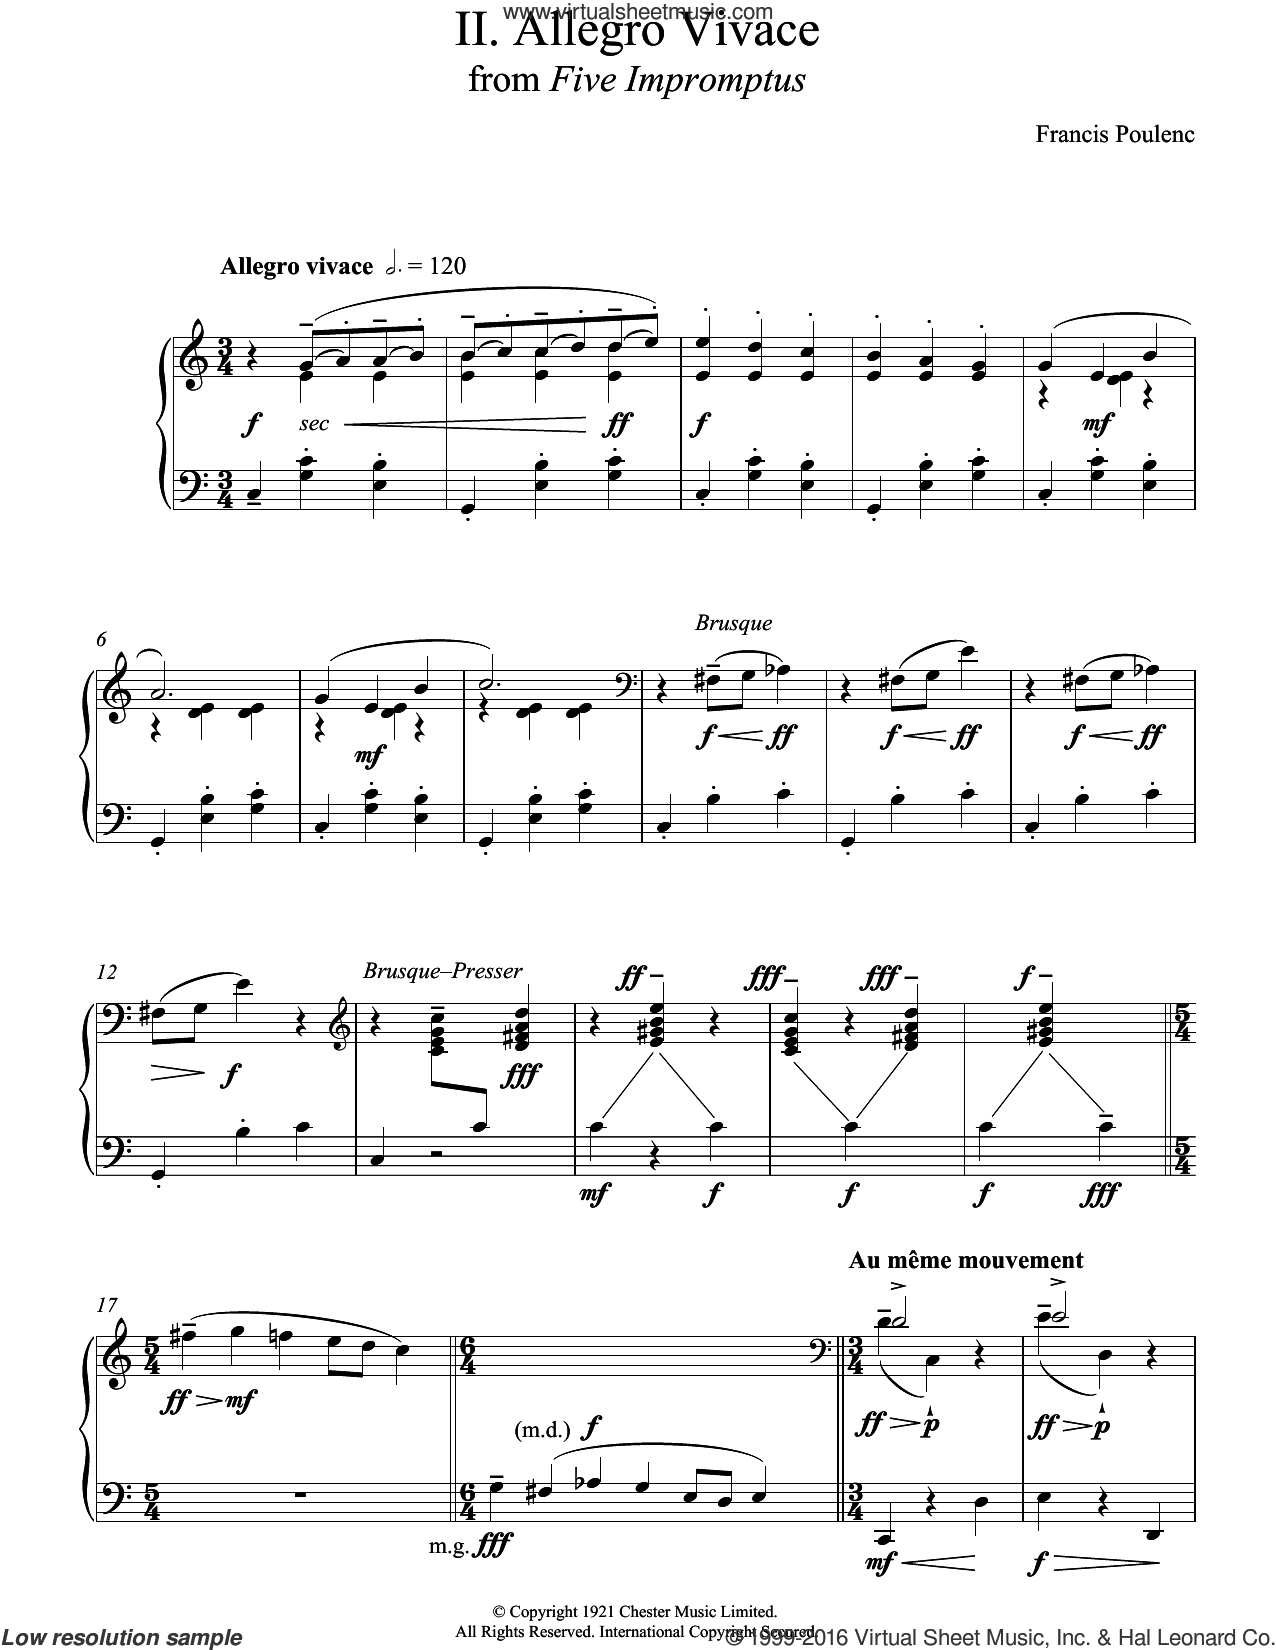 Allegro Vivace (From Five Impromptus) sheet music for piano solo by Francis Poulenc. Score Image Preview.